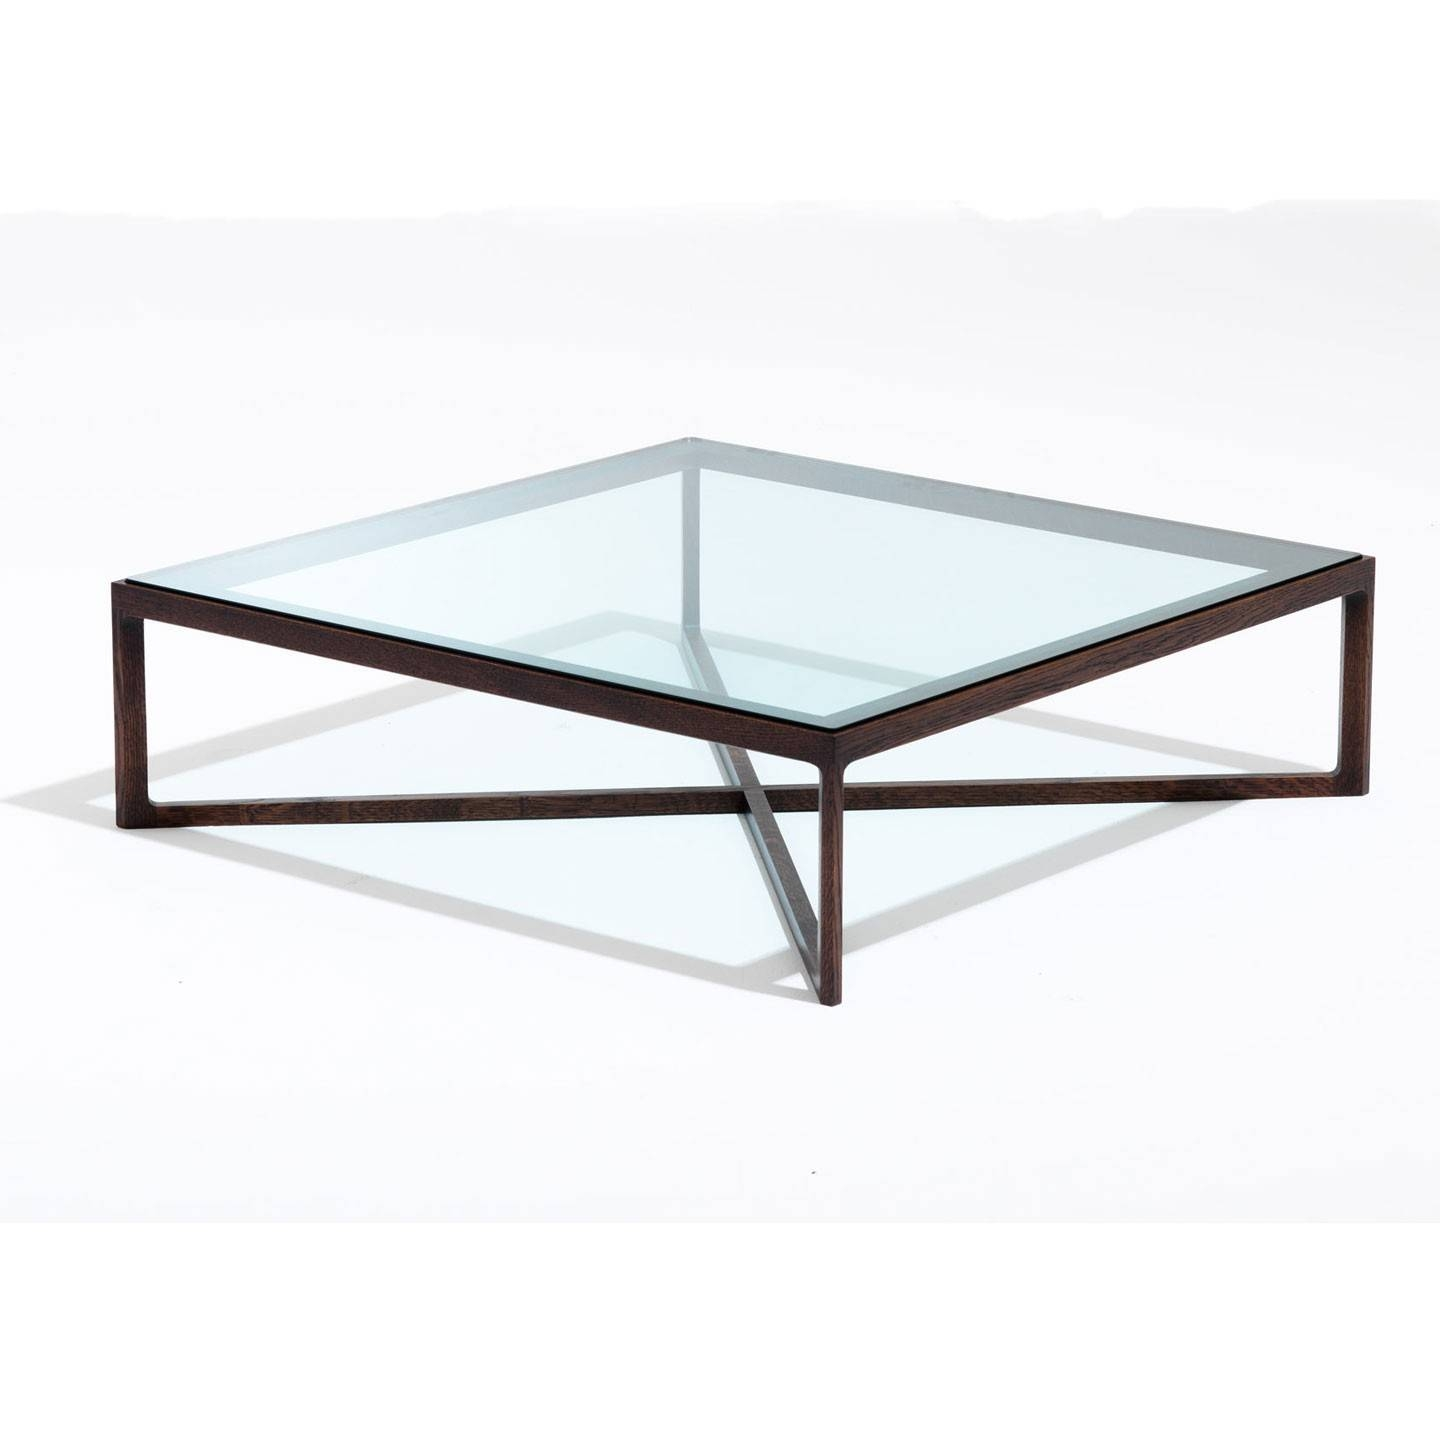 Square Glass Coffee Table For Living Room Decoration - Ruchi Designs in Iron Glass Coffee Table (Image 10 of 15)